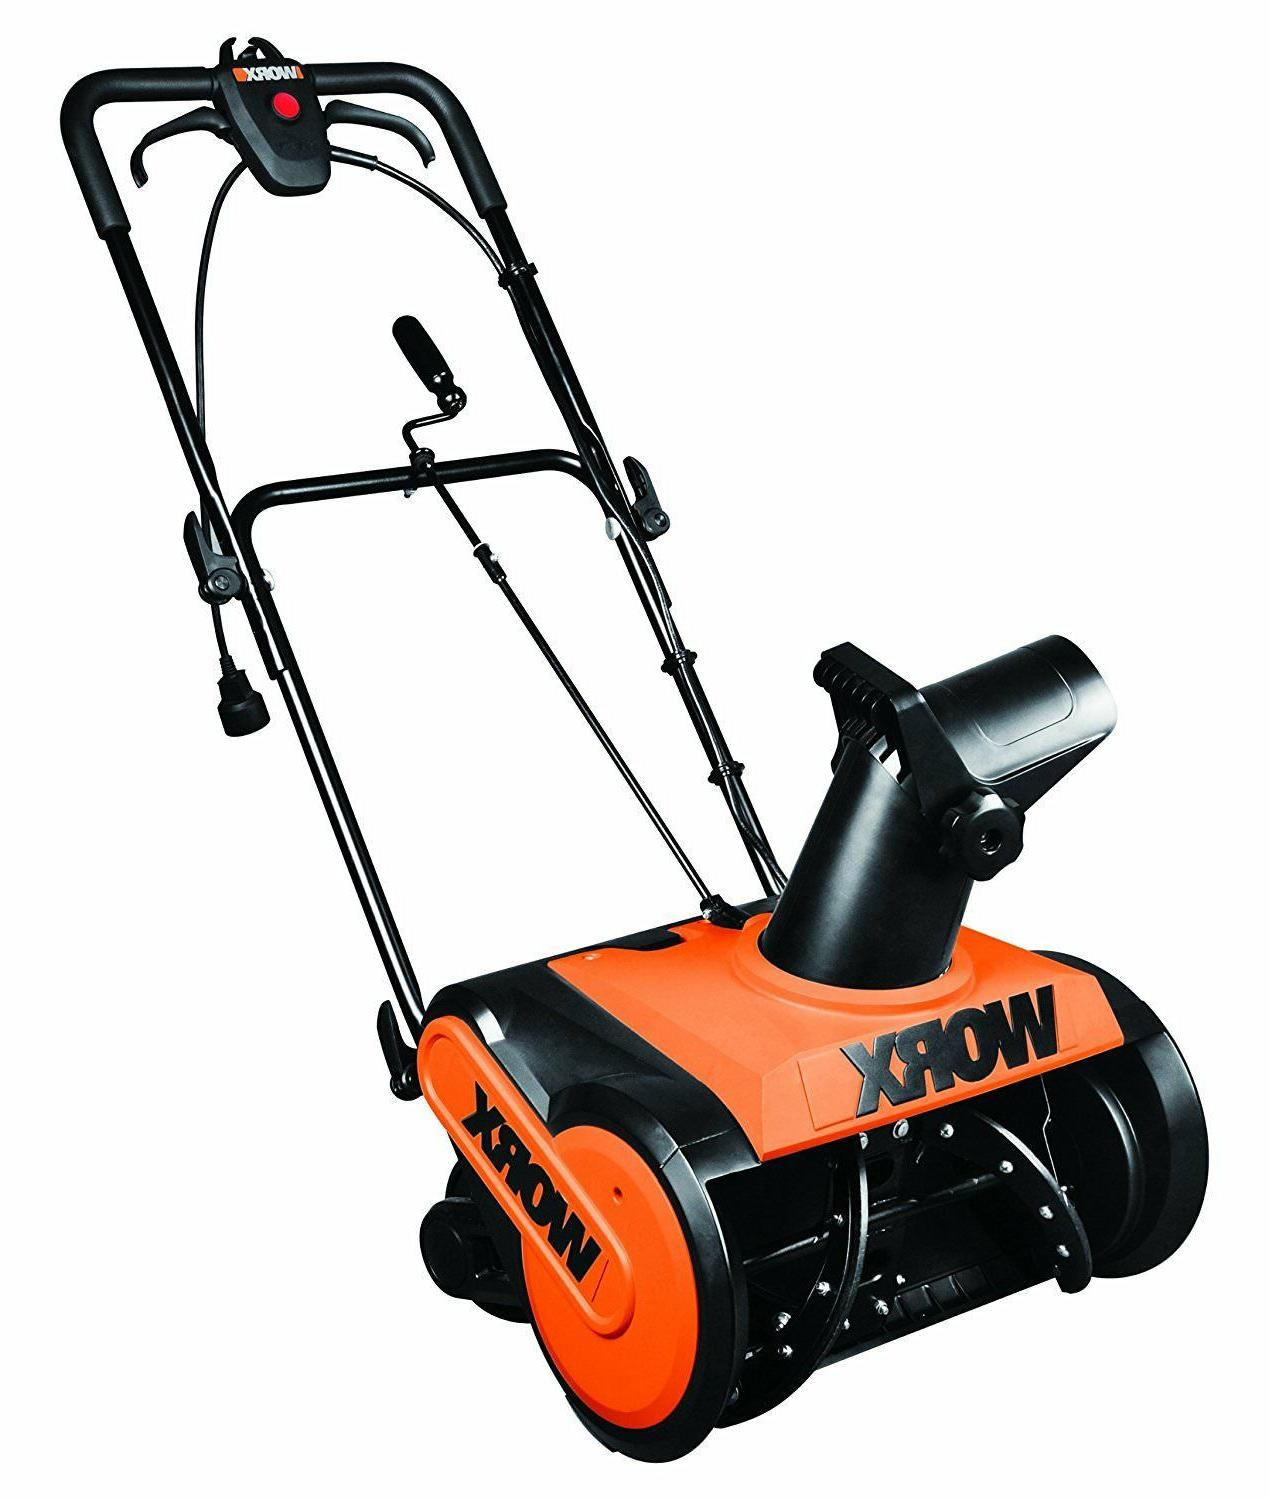 WORX WG650 18-Inch Amp Electric Snow Tool-Less Snow Thrower Snow